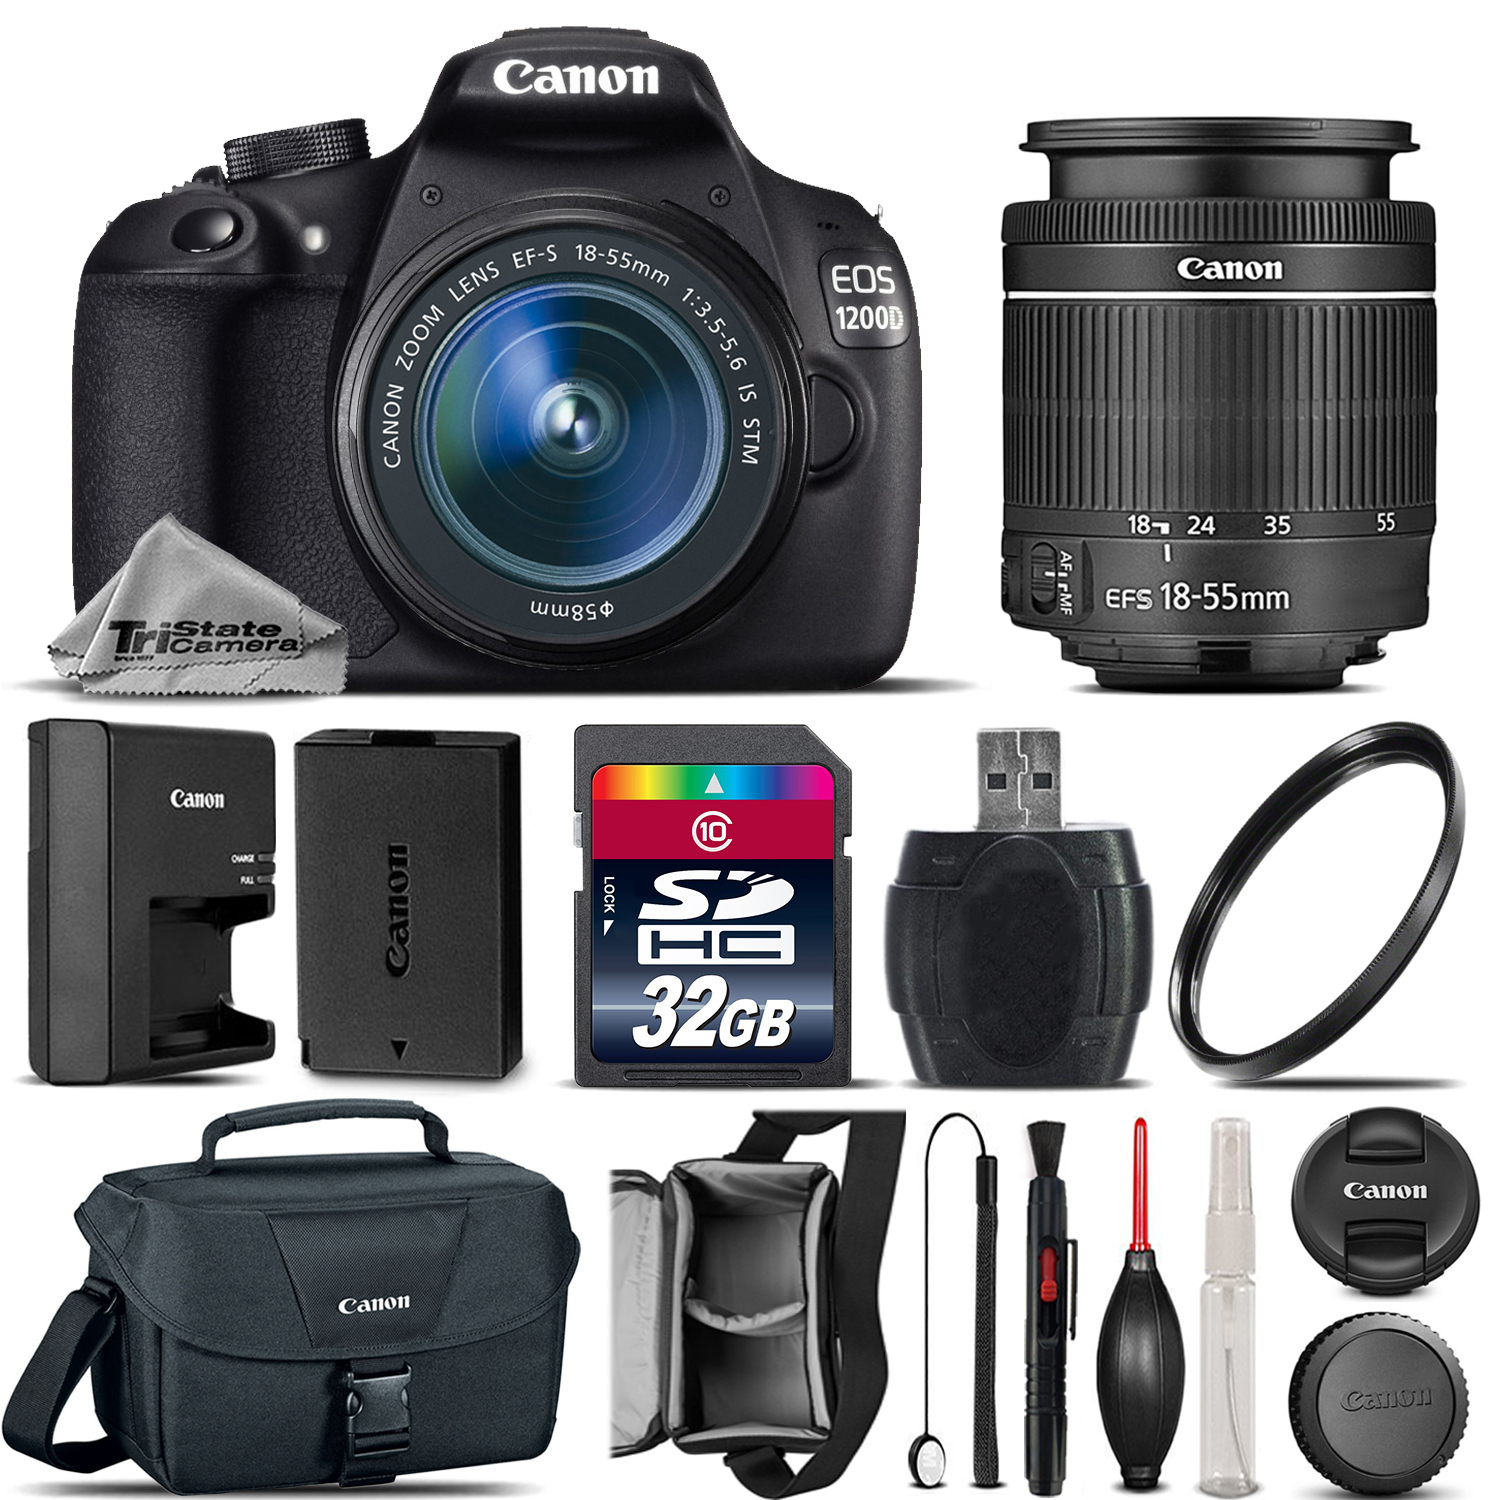 Tri State Camera Video And Computer Accessories Canon Eos 100d Kit 18 55 Is Stm 100 D Rebel 1200d T5 55mm Lens Case 32gb Free Shipping